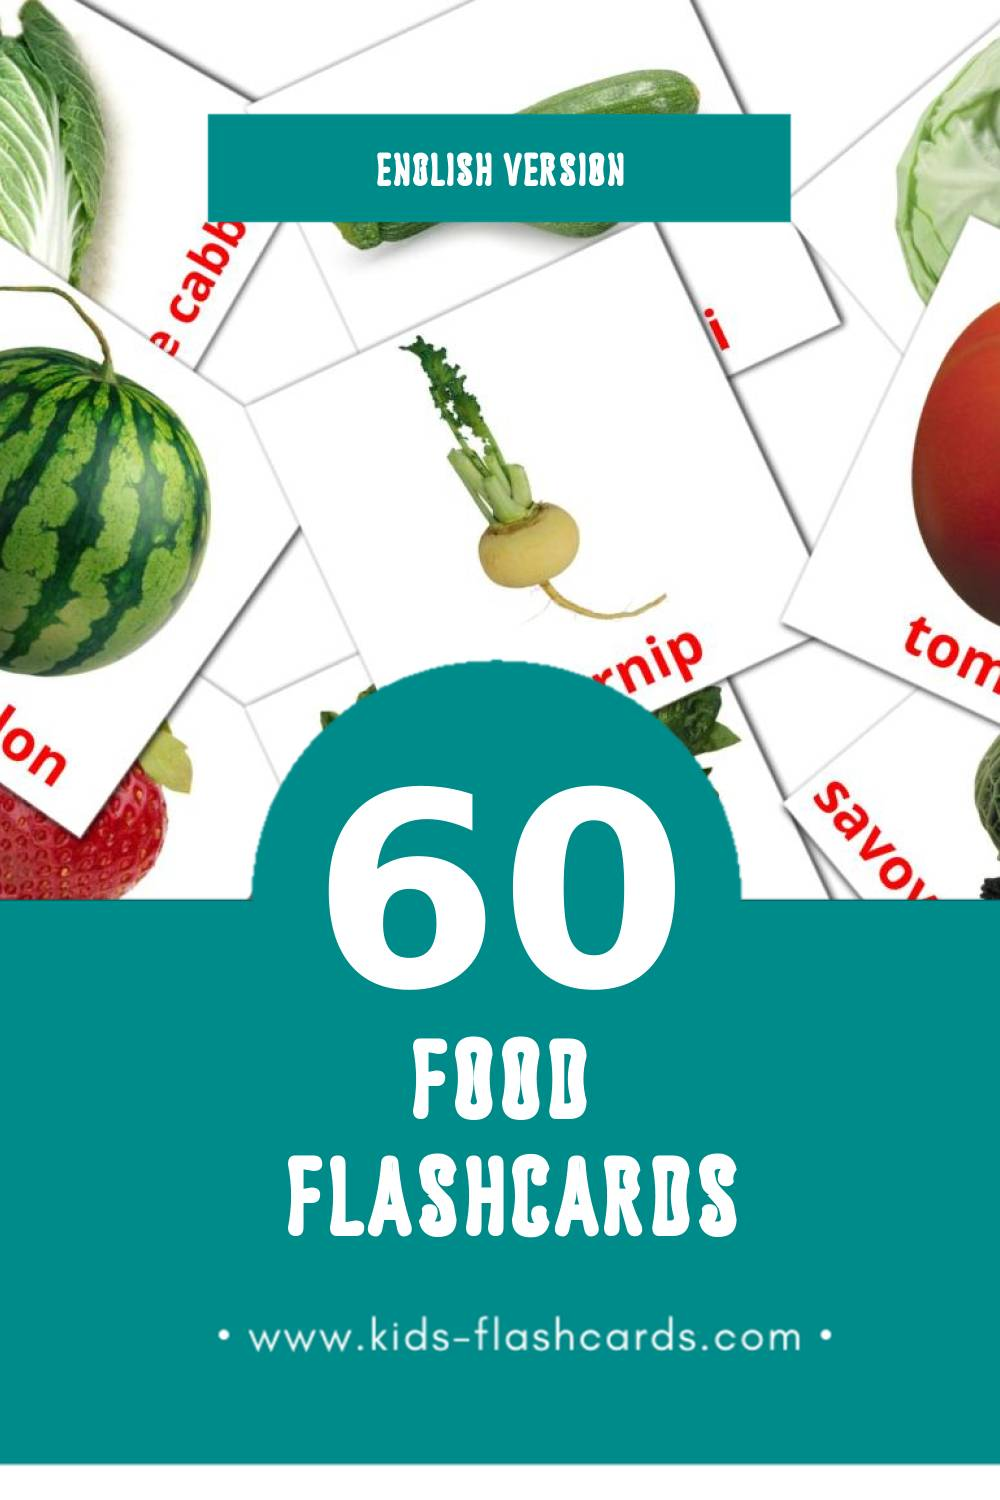 Visual Food Flashcards for Toddlers (60 cards in English)